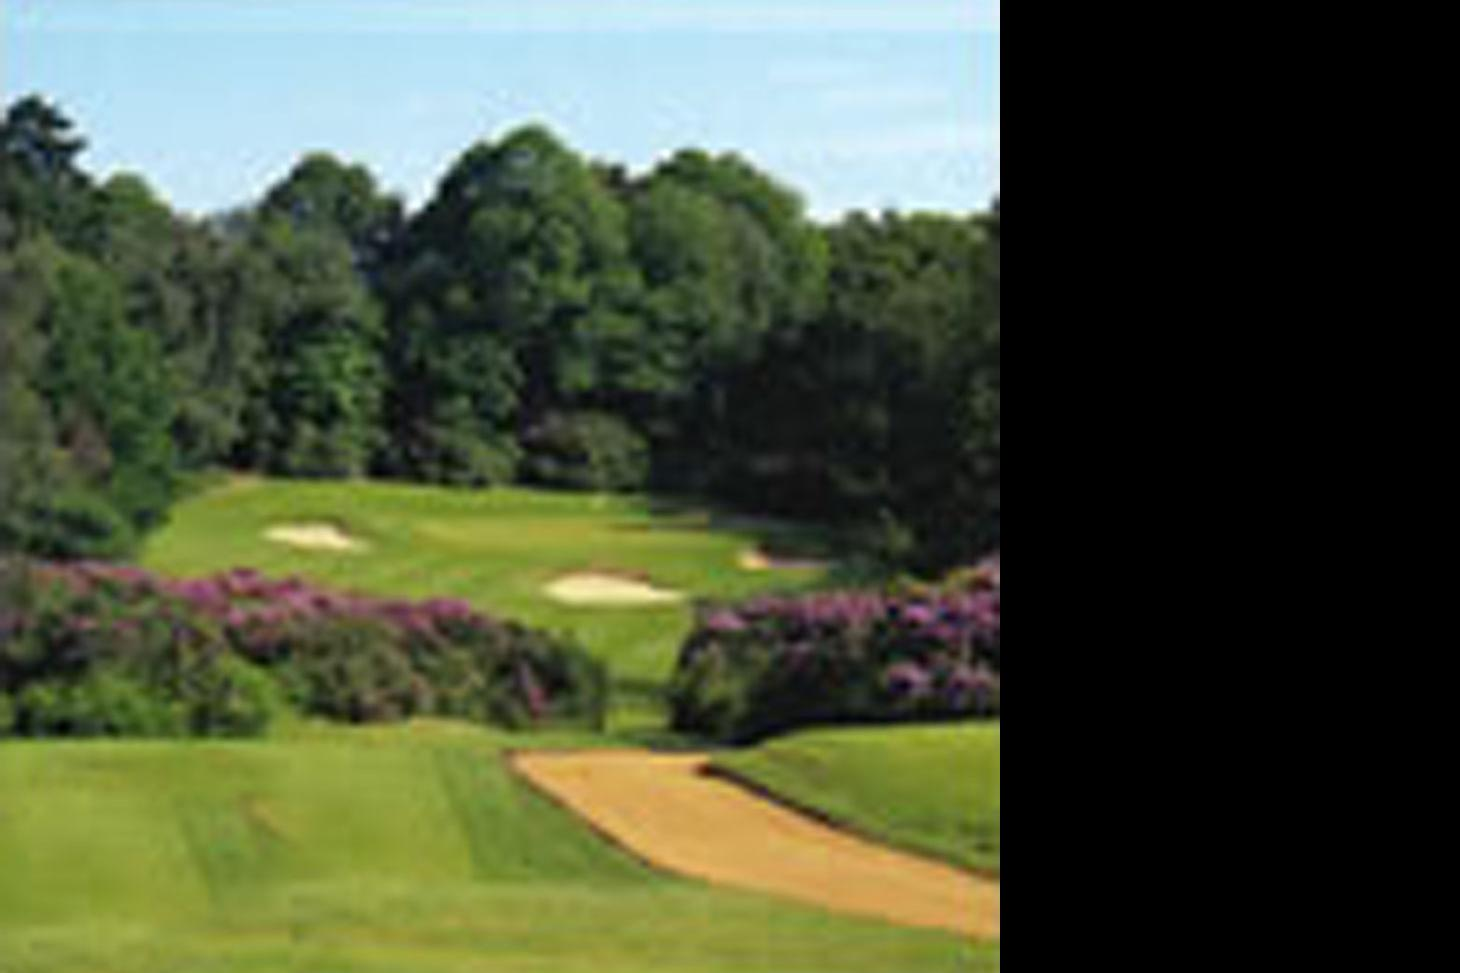 Coombe Hill Golf Club 18 hole golf course